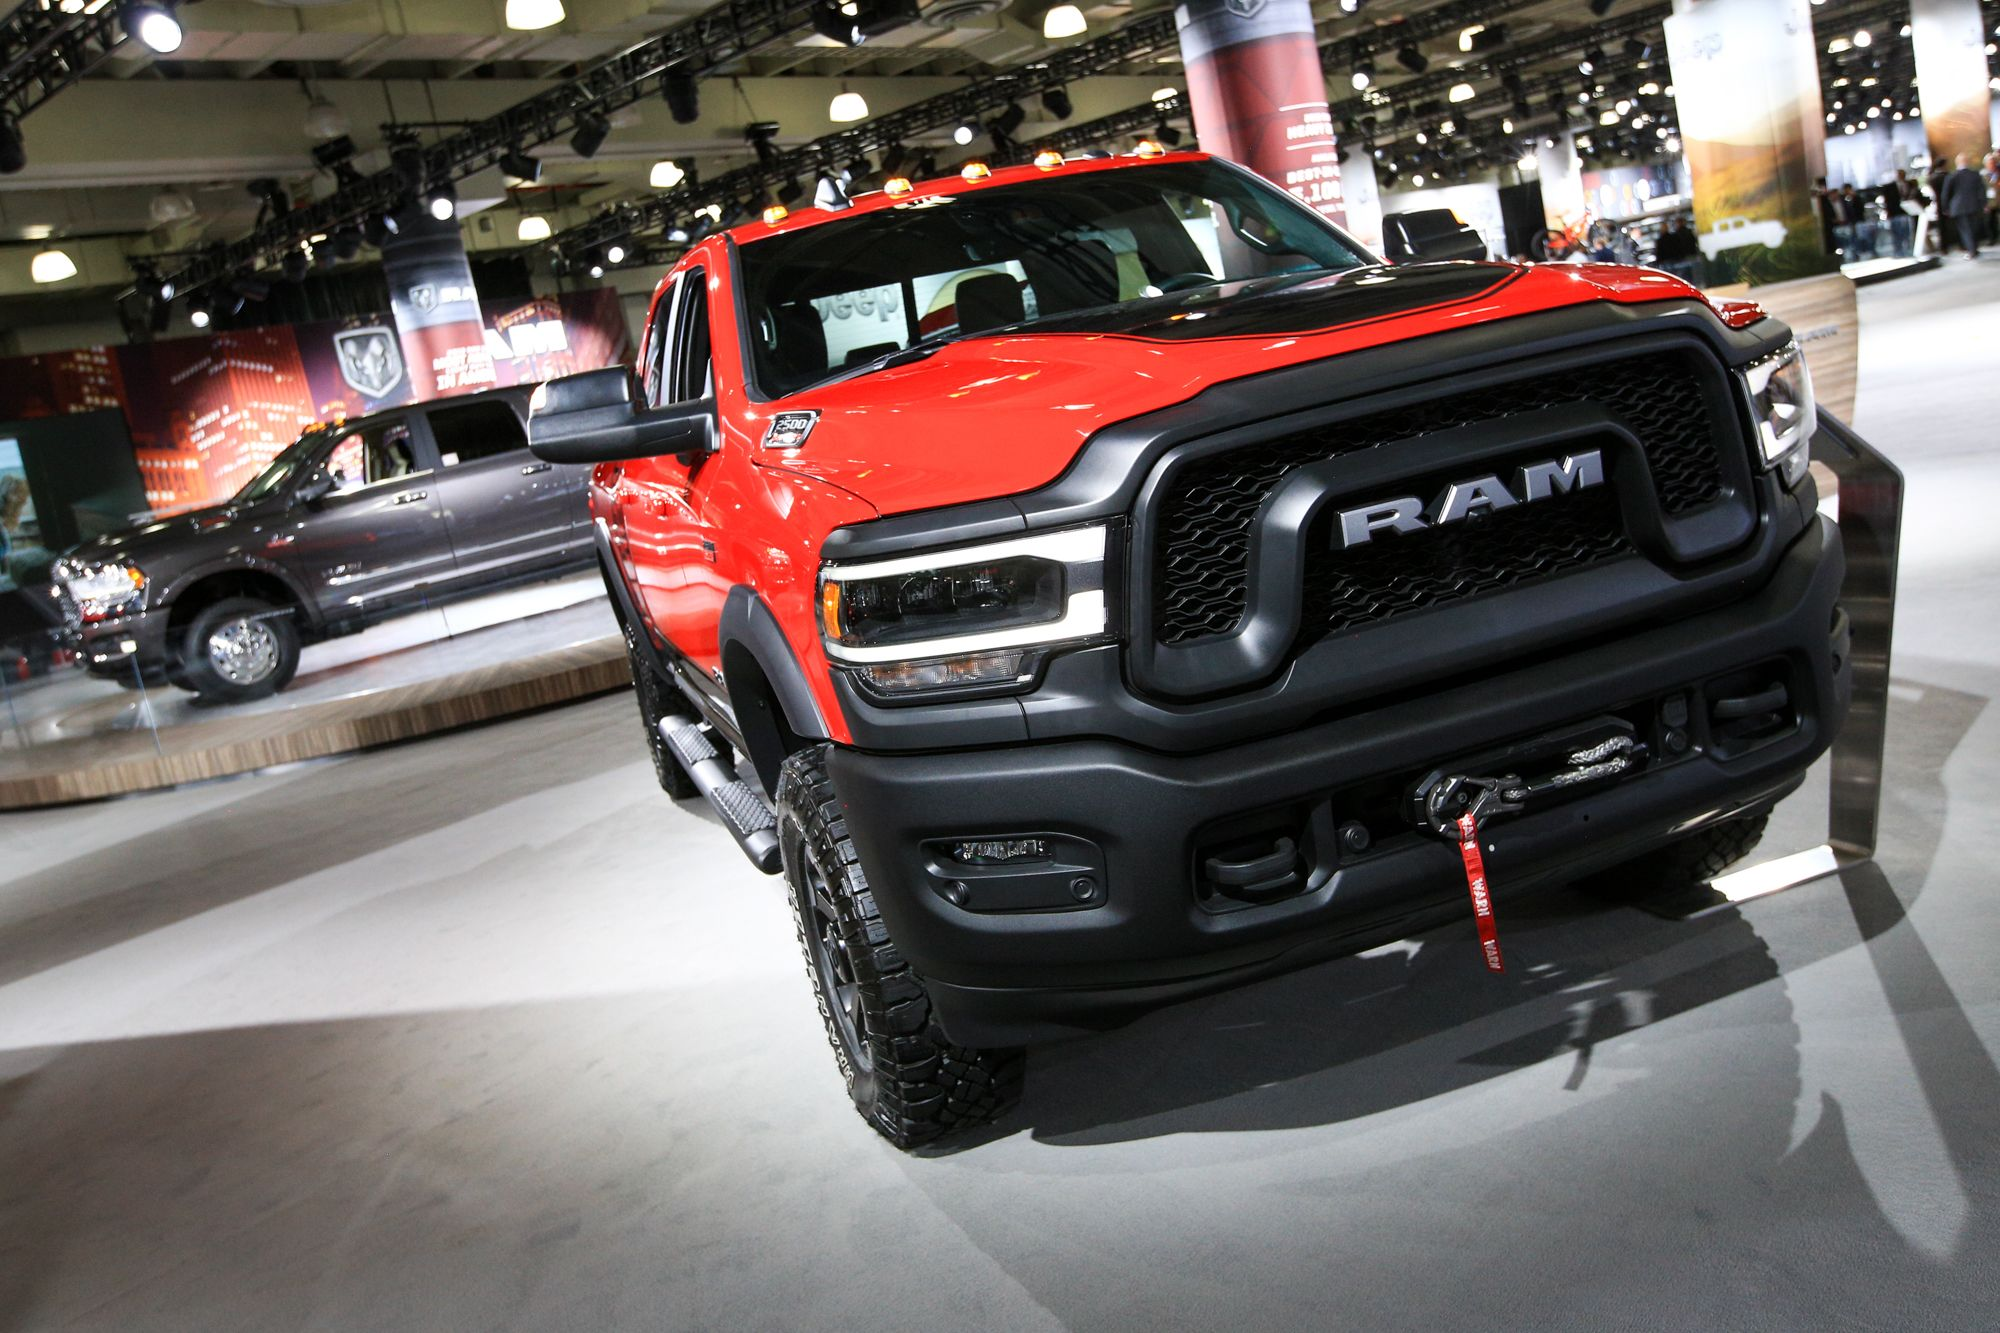 Ram pickups outsell rival Chevy Silverado for second-straight quarter